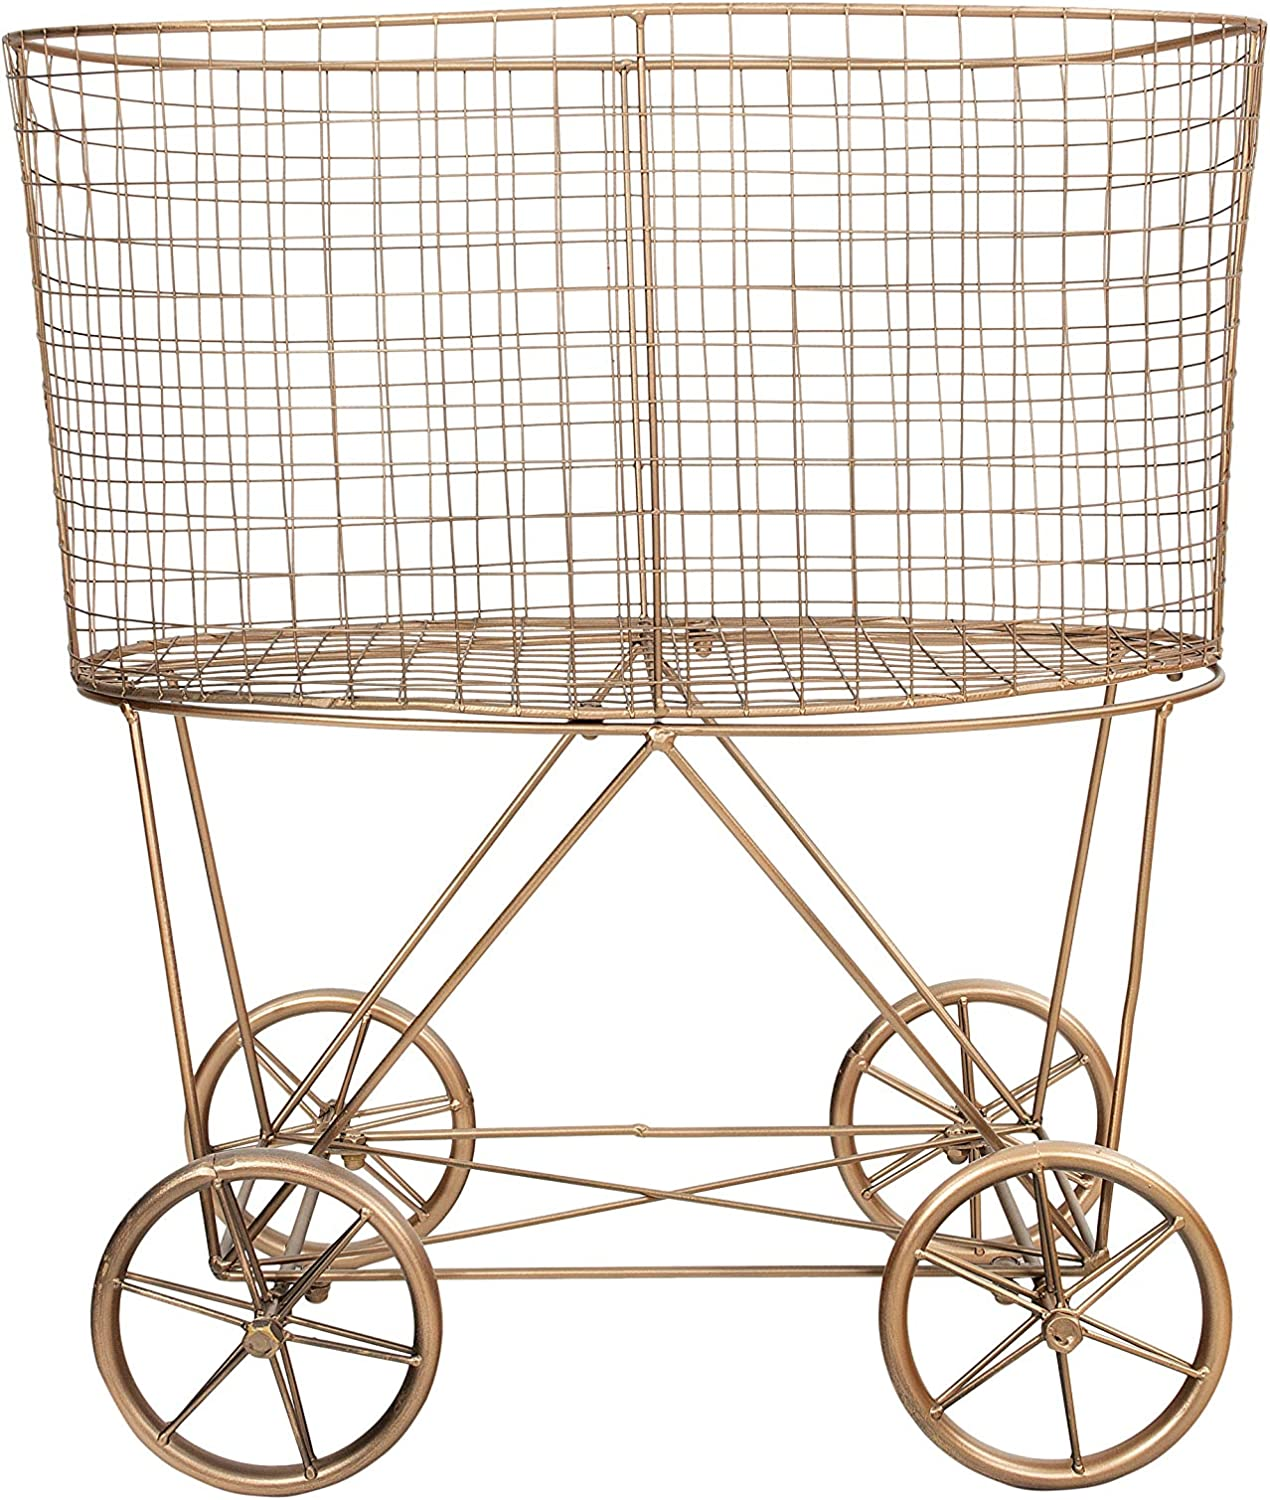 Creative Co-op Vintage Metal Laundry Basket with Wheels, Copper